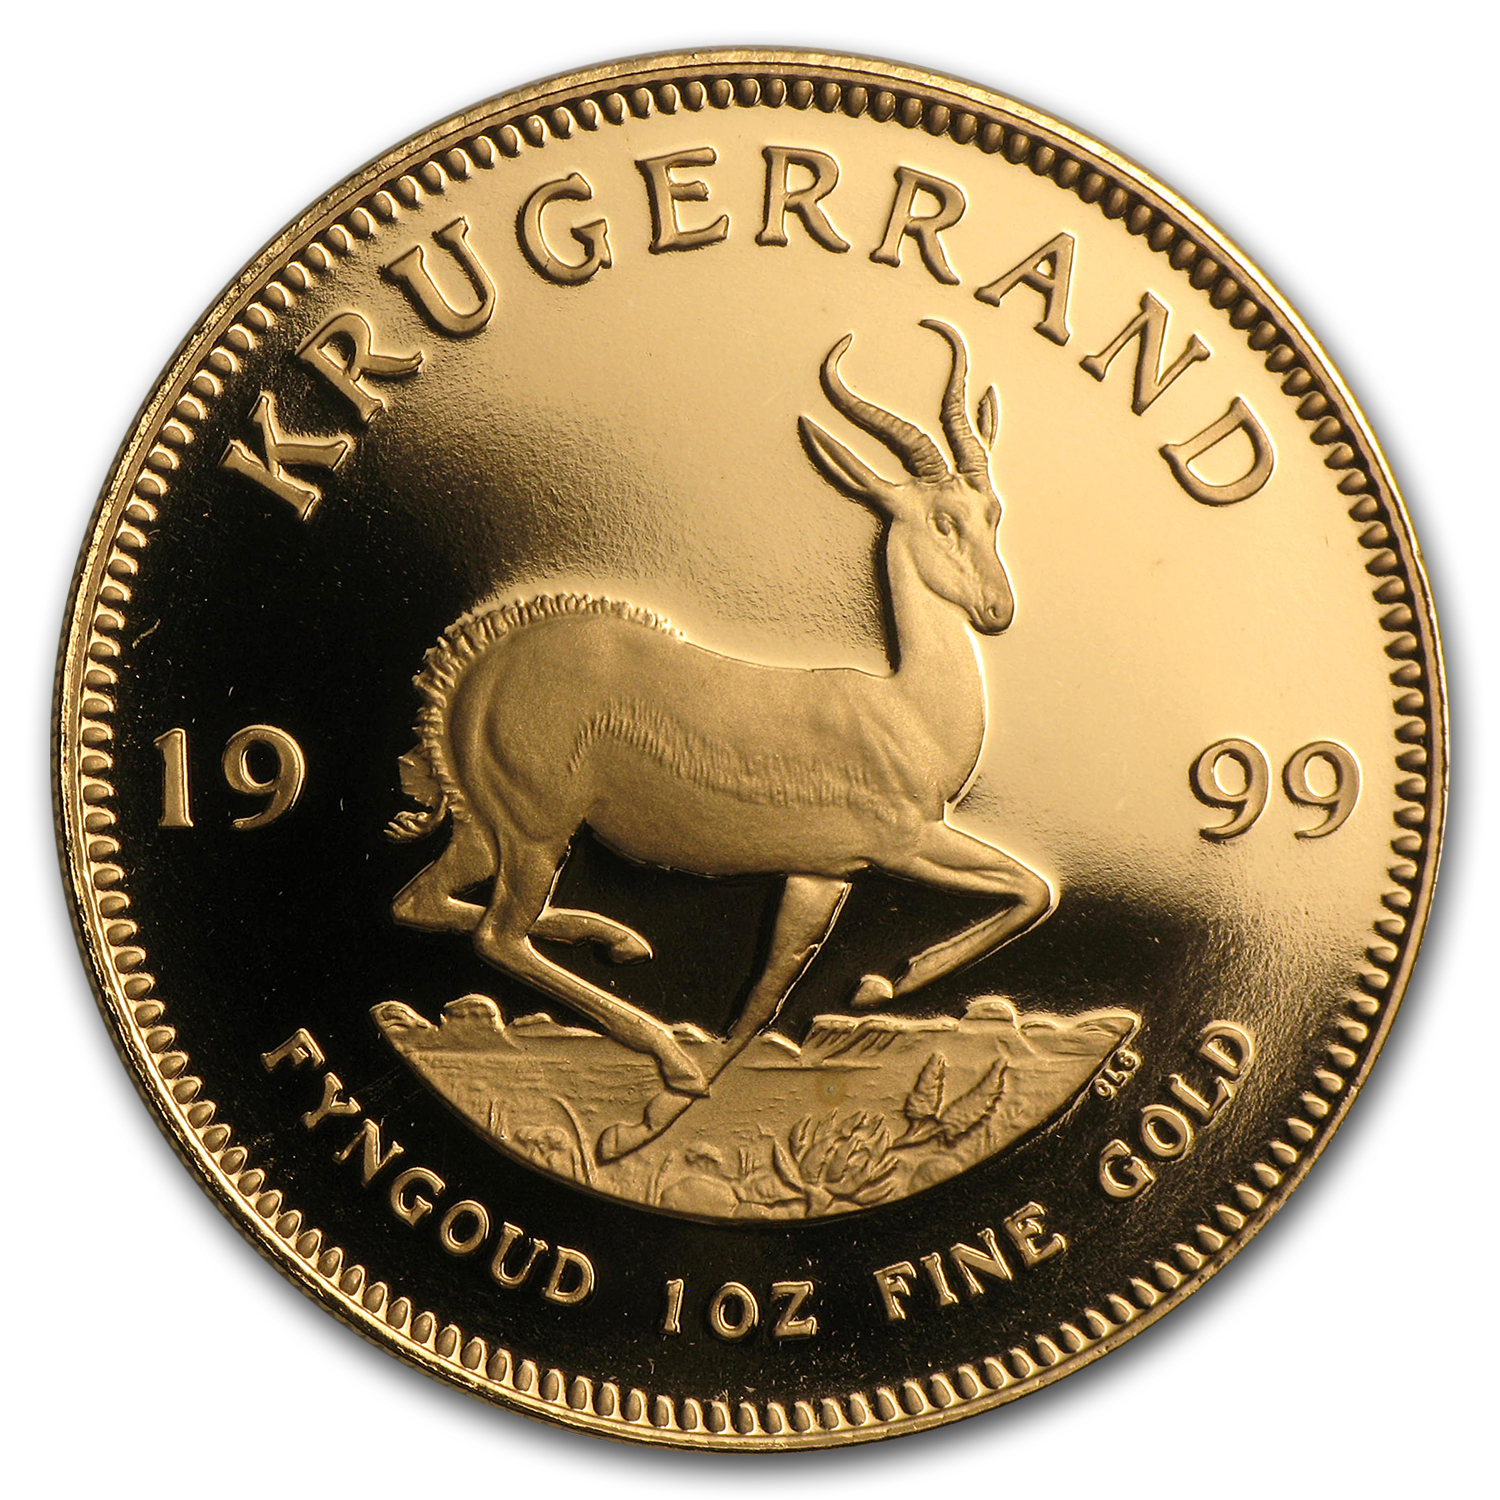 1999 1 oz Gold South African Krugerrand